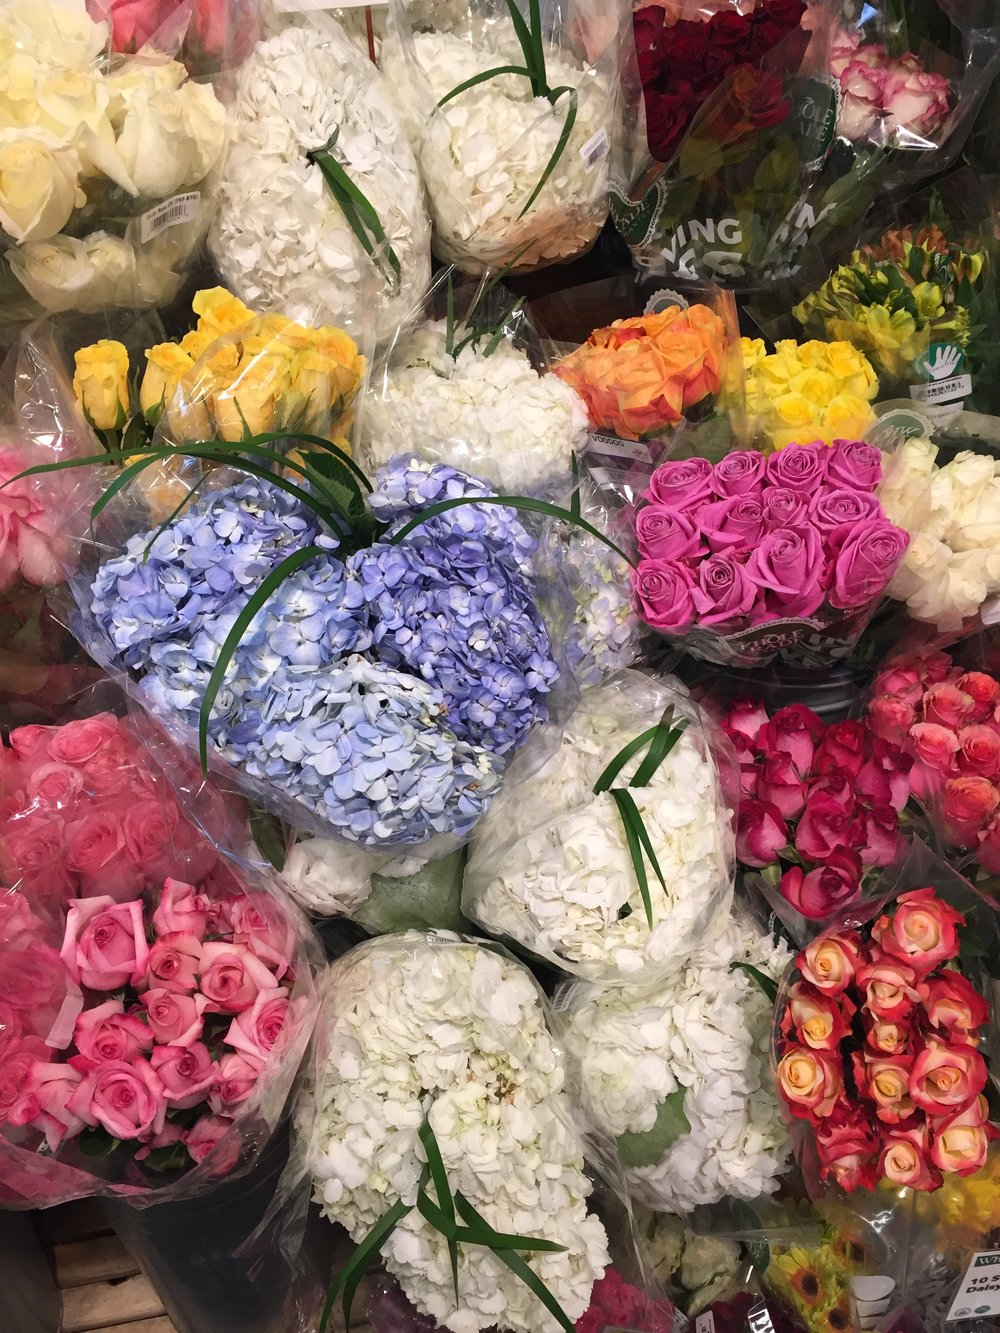 THE PRETTIEST FLOWERS AT WHOLE FOODS MARKET GOT ME YEARNING FOR SPRING REAAAL HARD.